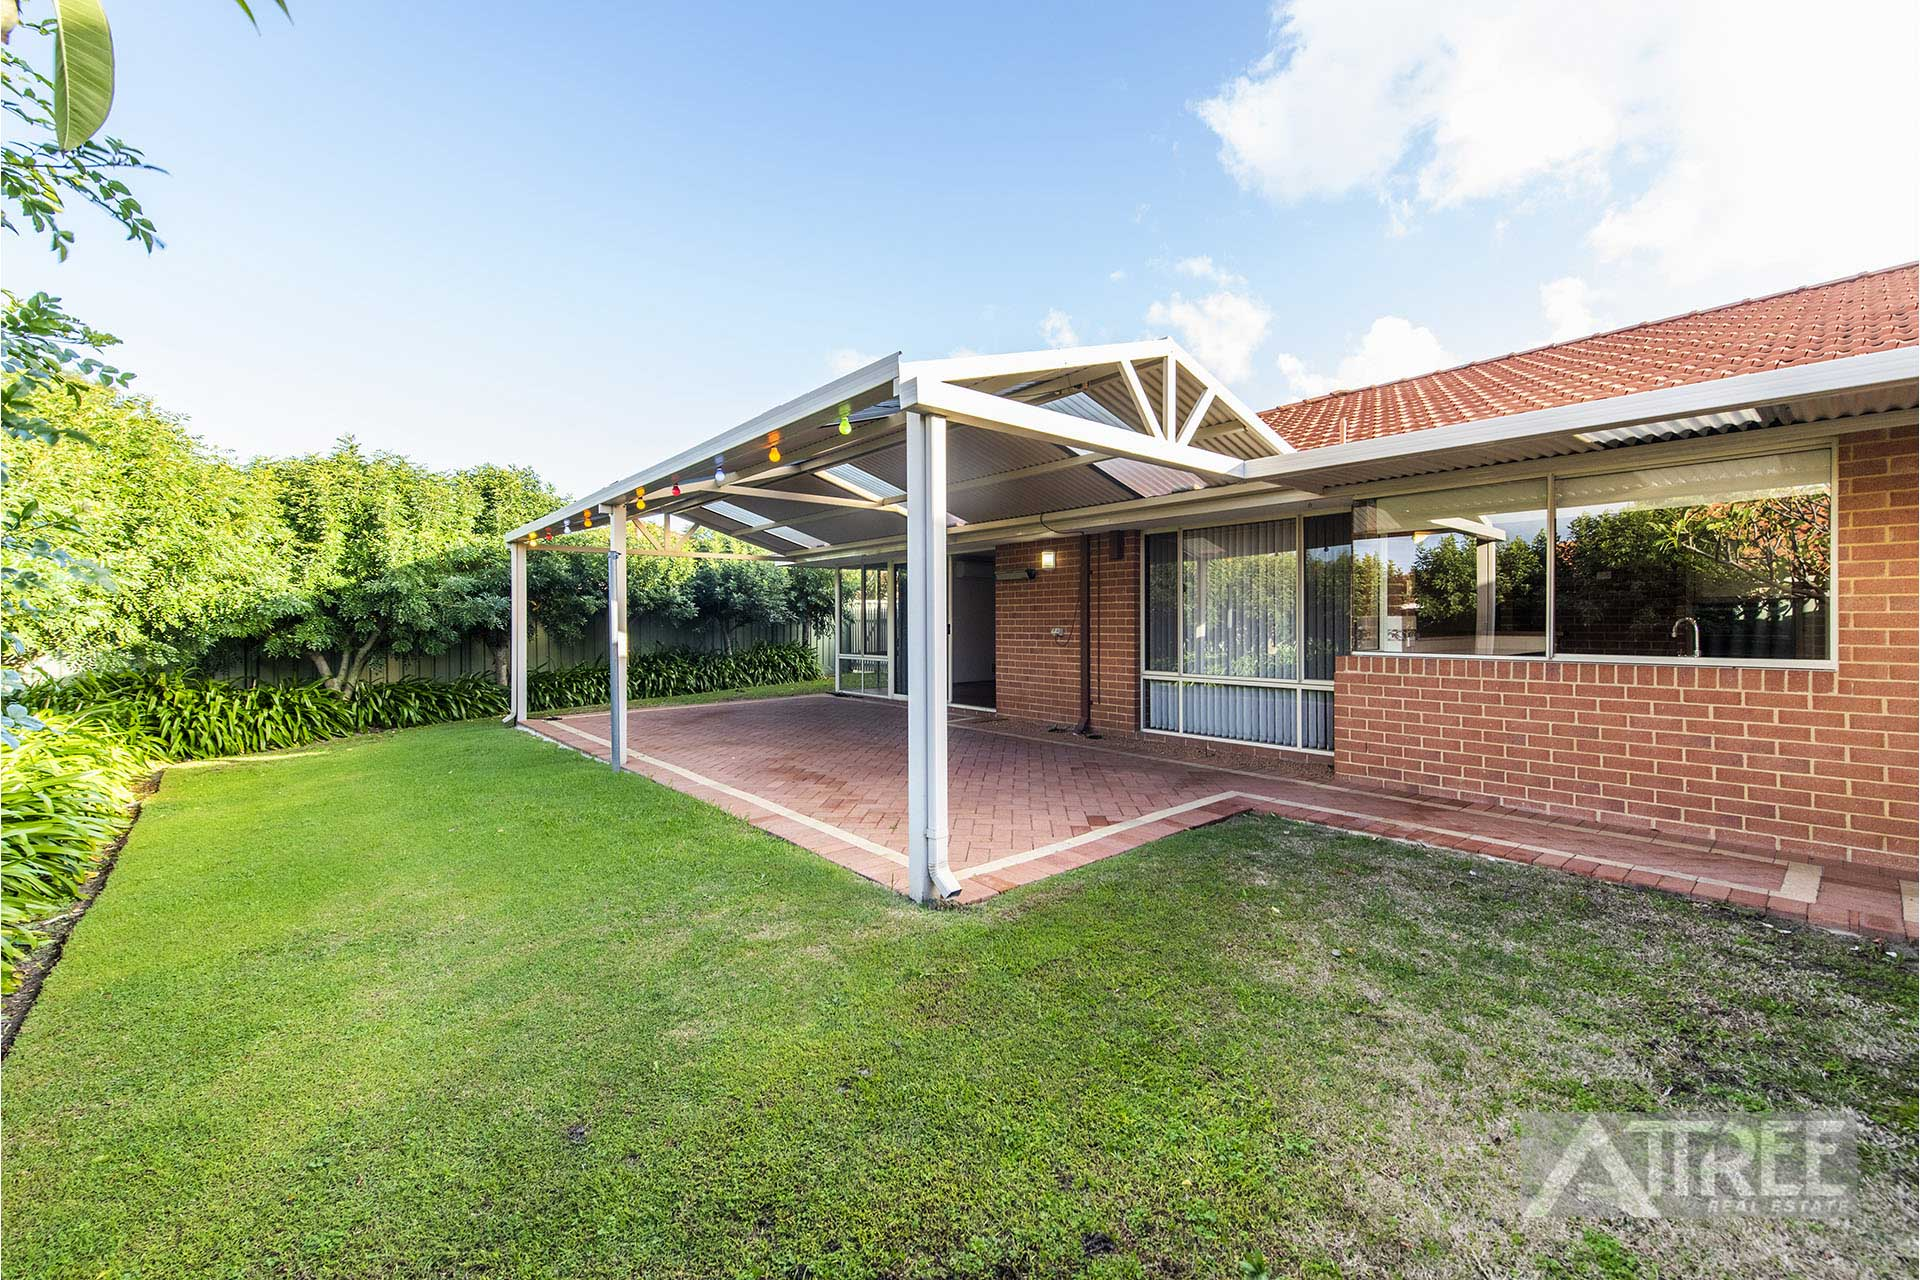 Property for sale in CANNING VALE, 6 Cliffside Lane : Attree Real Estate